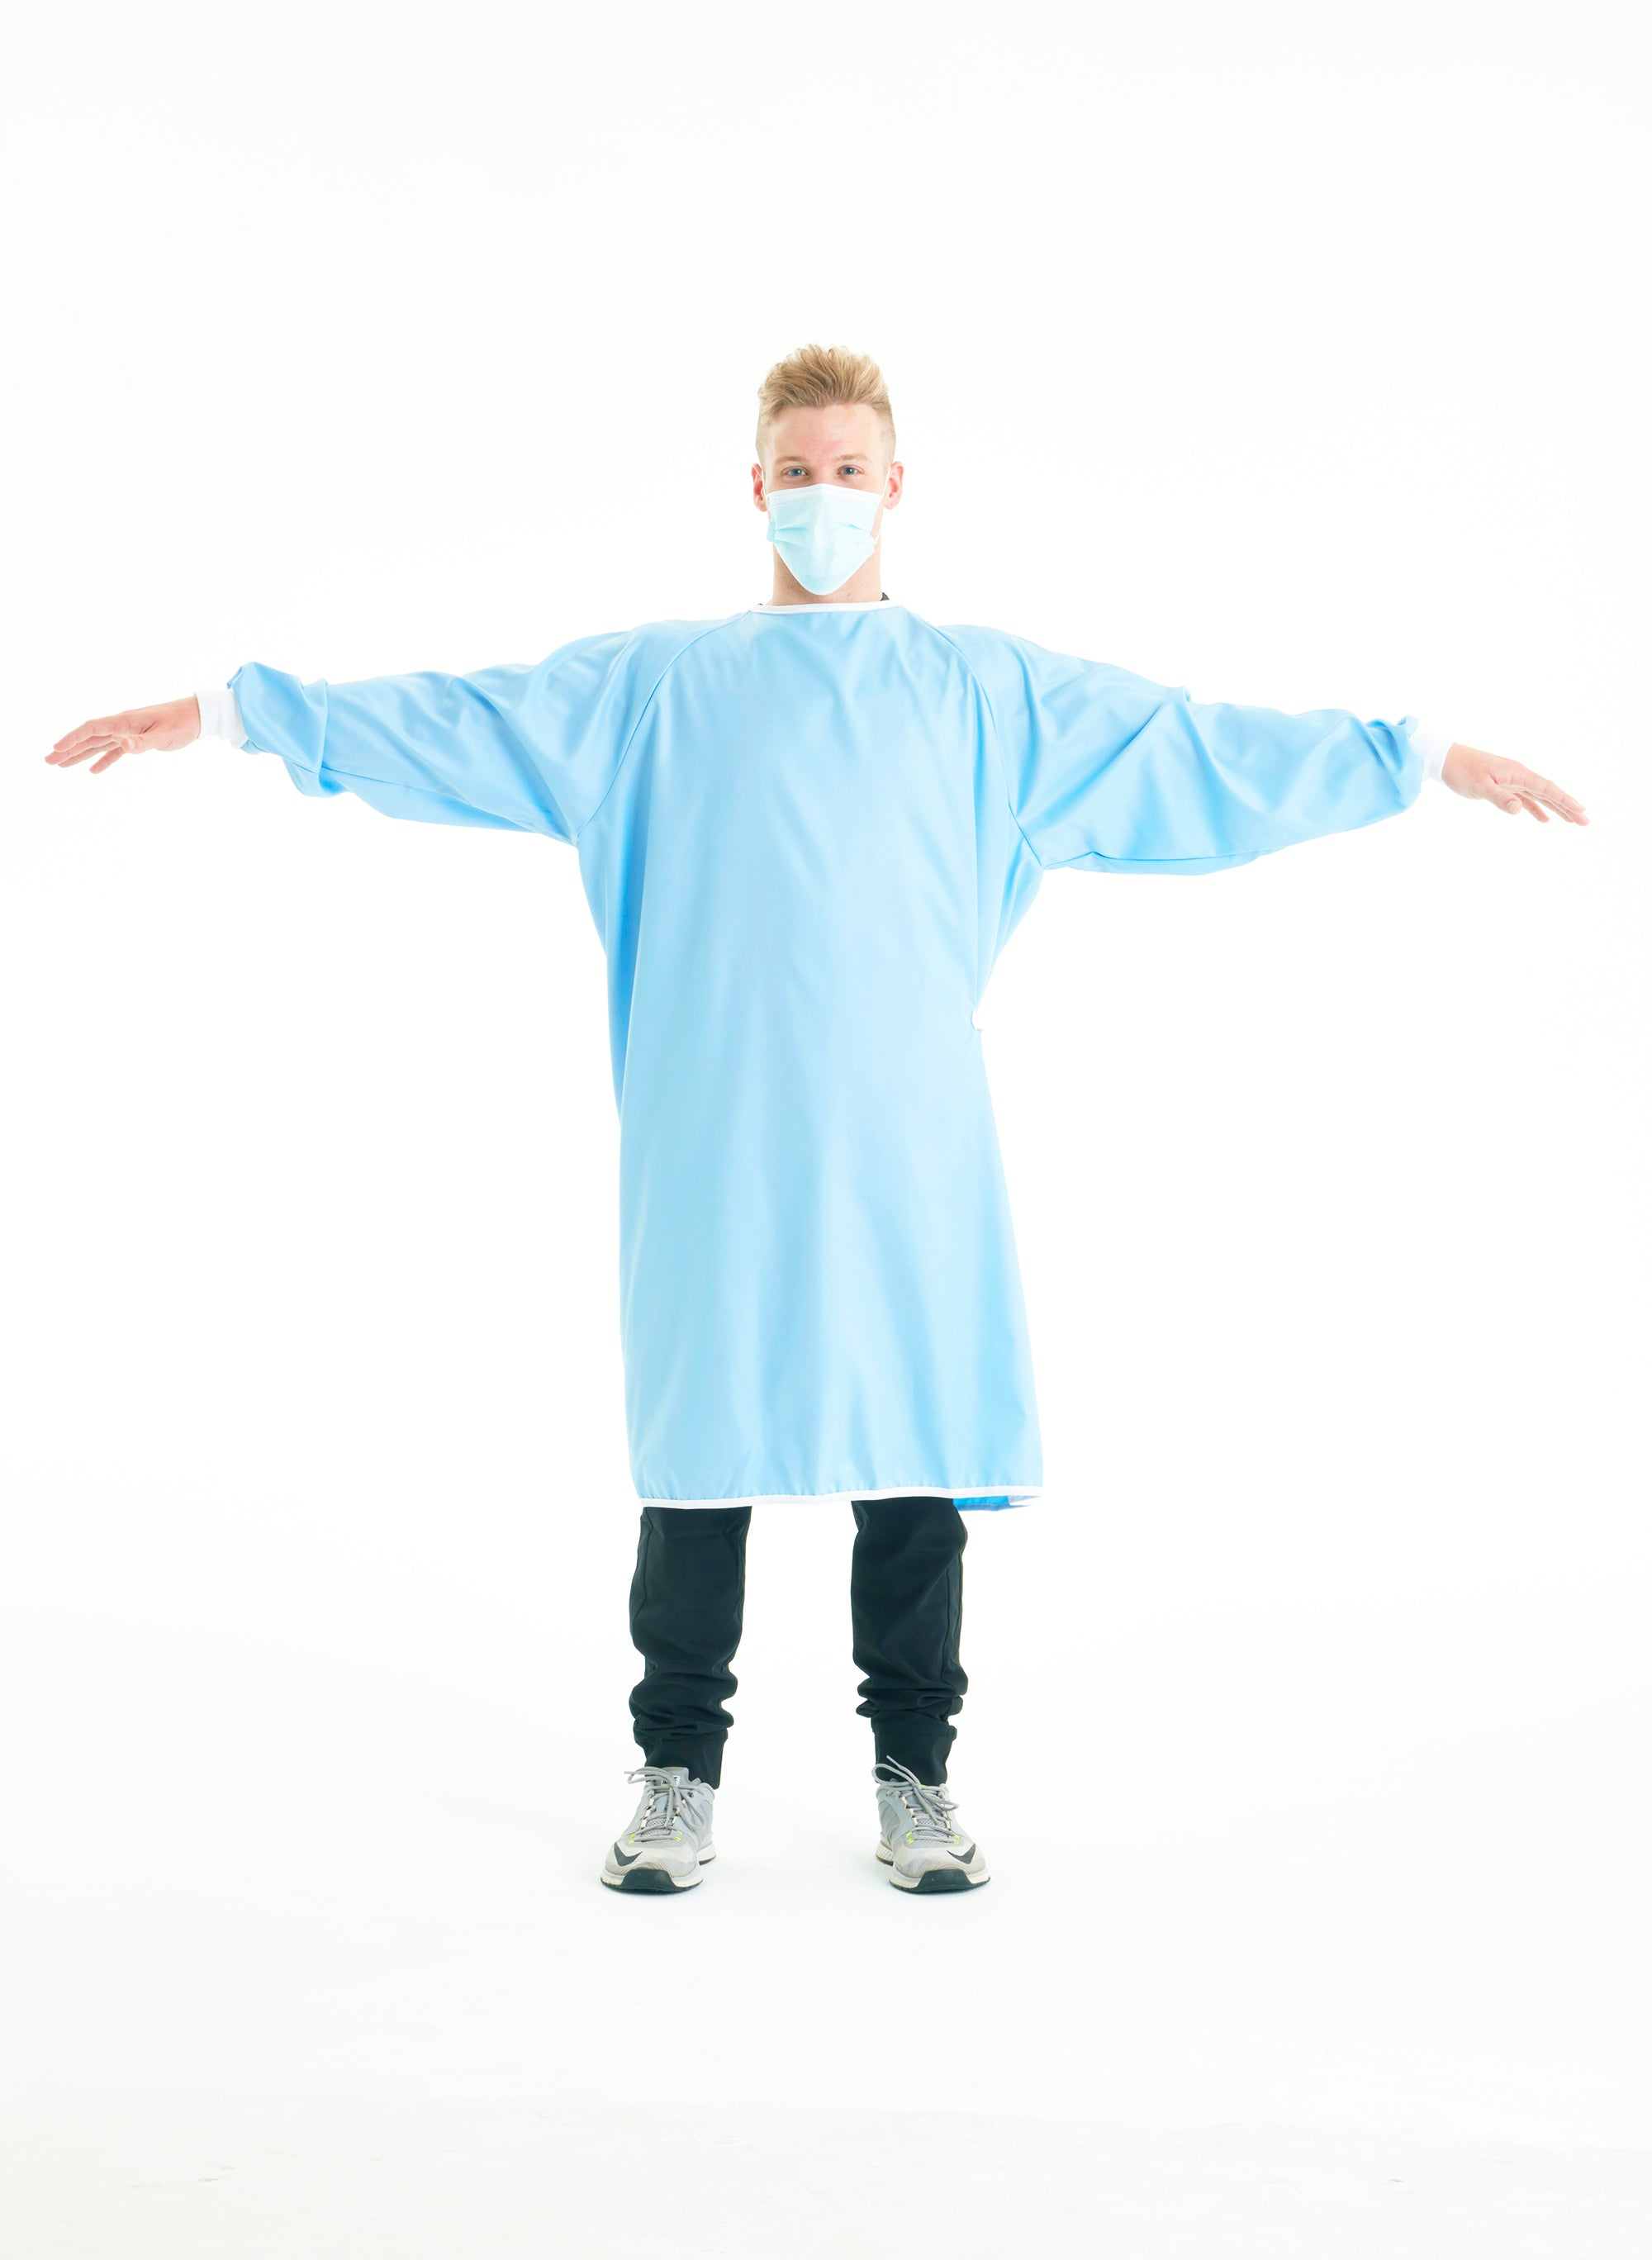 man-with-arms-wide-showing-off-blue-reusable-level-2-gowns